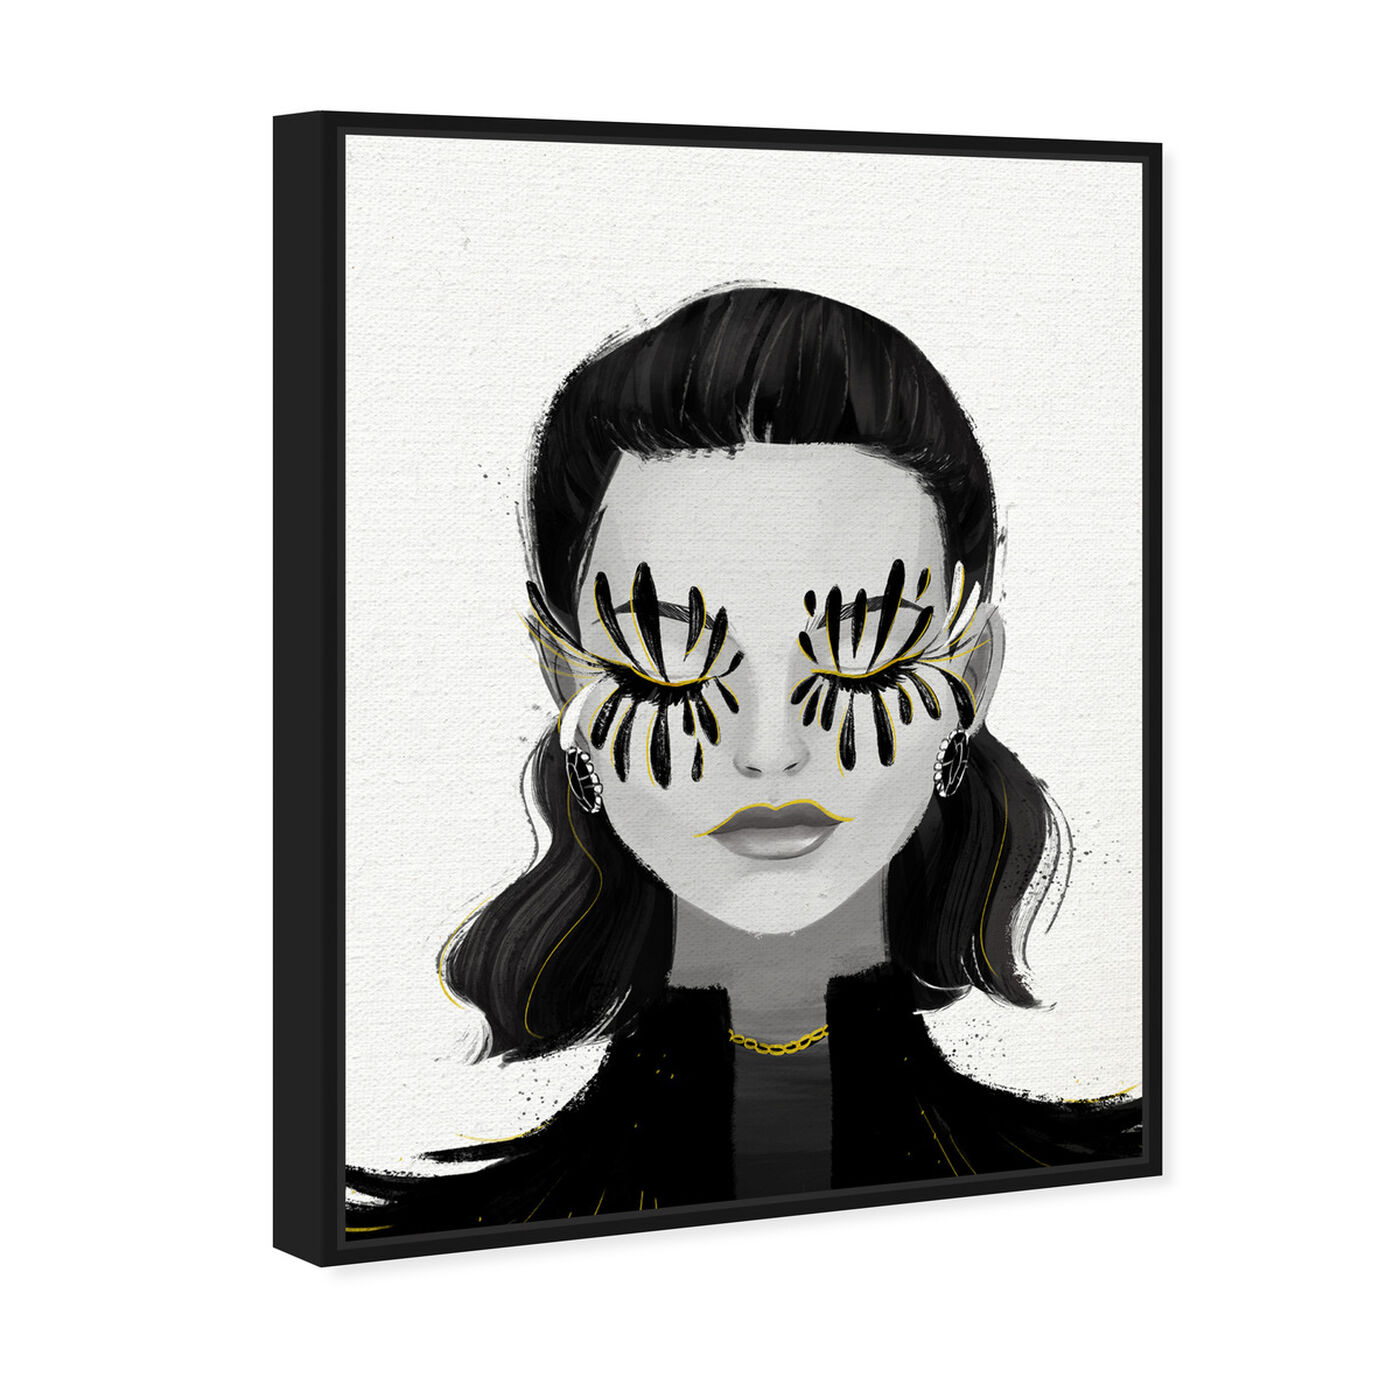 Angled view of Eyelash Petals Girls featuring fashion and glam and portraits art.